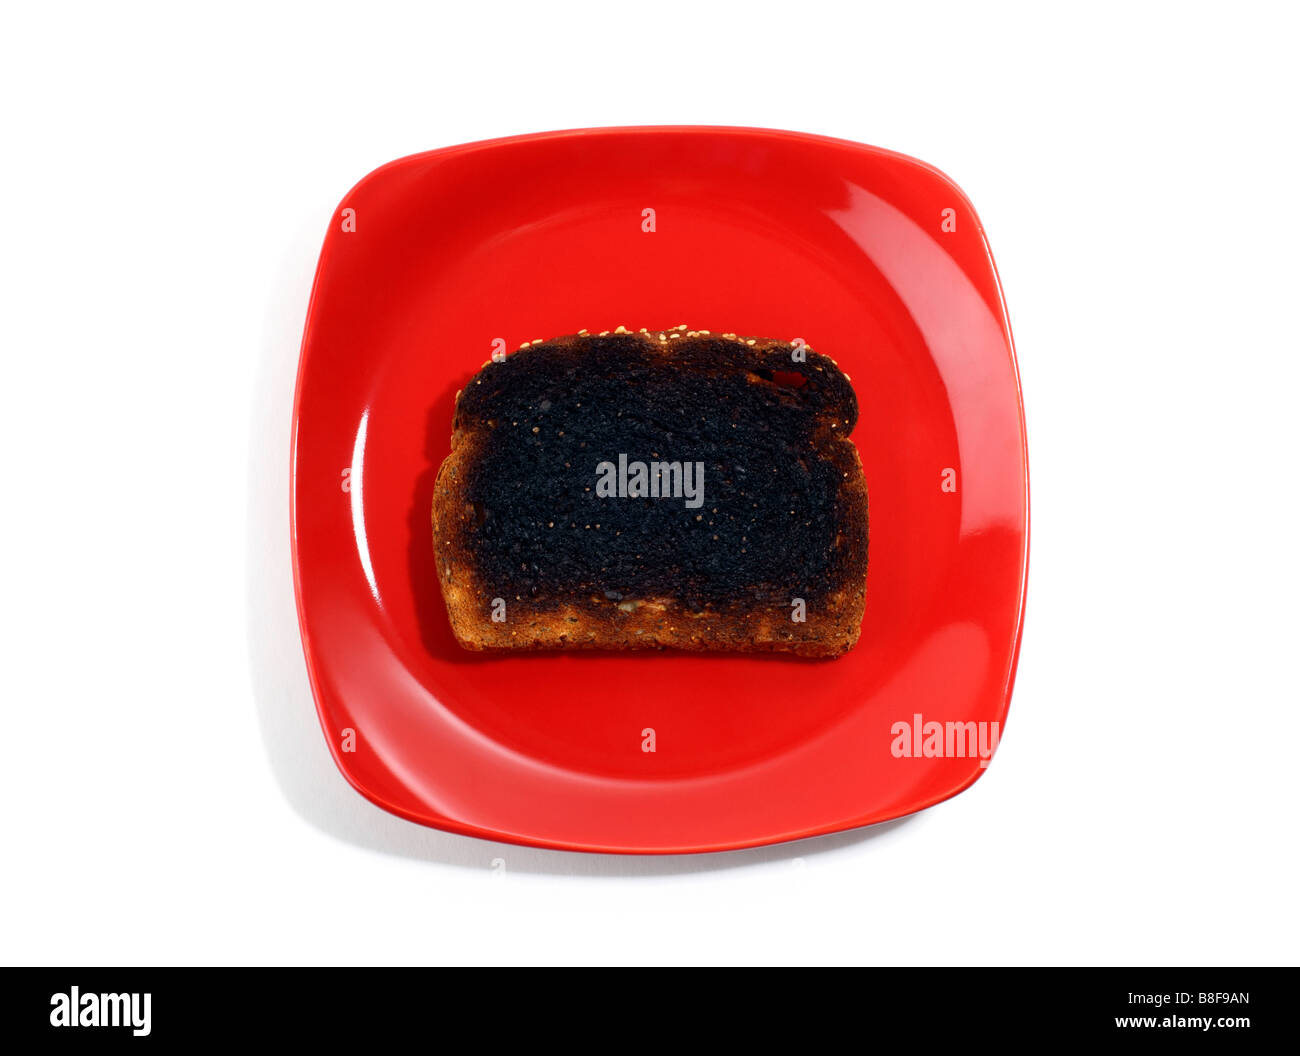 Burnt Toast on Red Plate - Stock Image